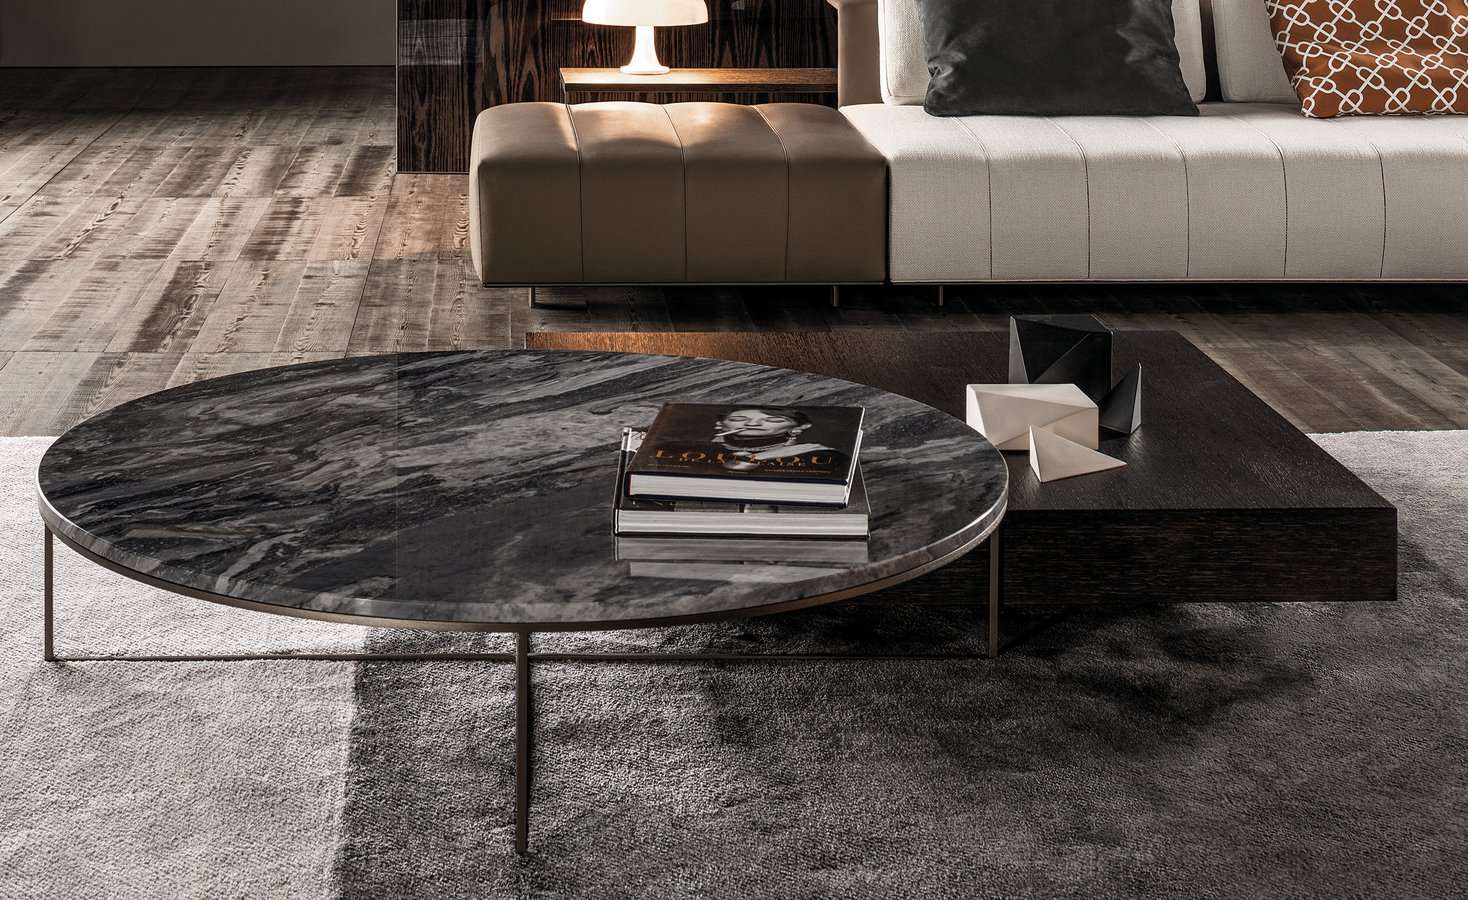 A Series Of New Finishes Contributes A Fresh, Contemporary Feel To The  Calder Family That Comprises Many Coffee Tables And Console Tables,  Available In ...